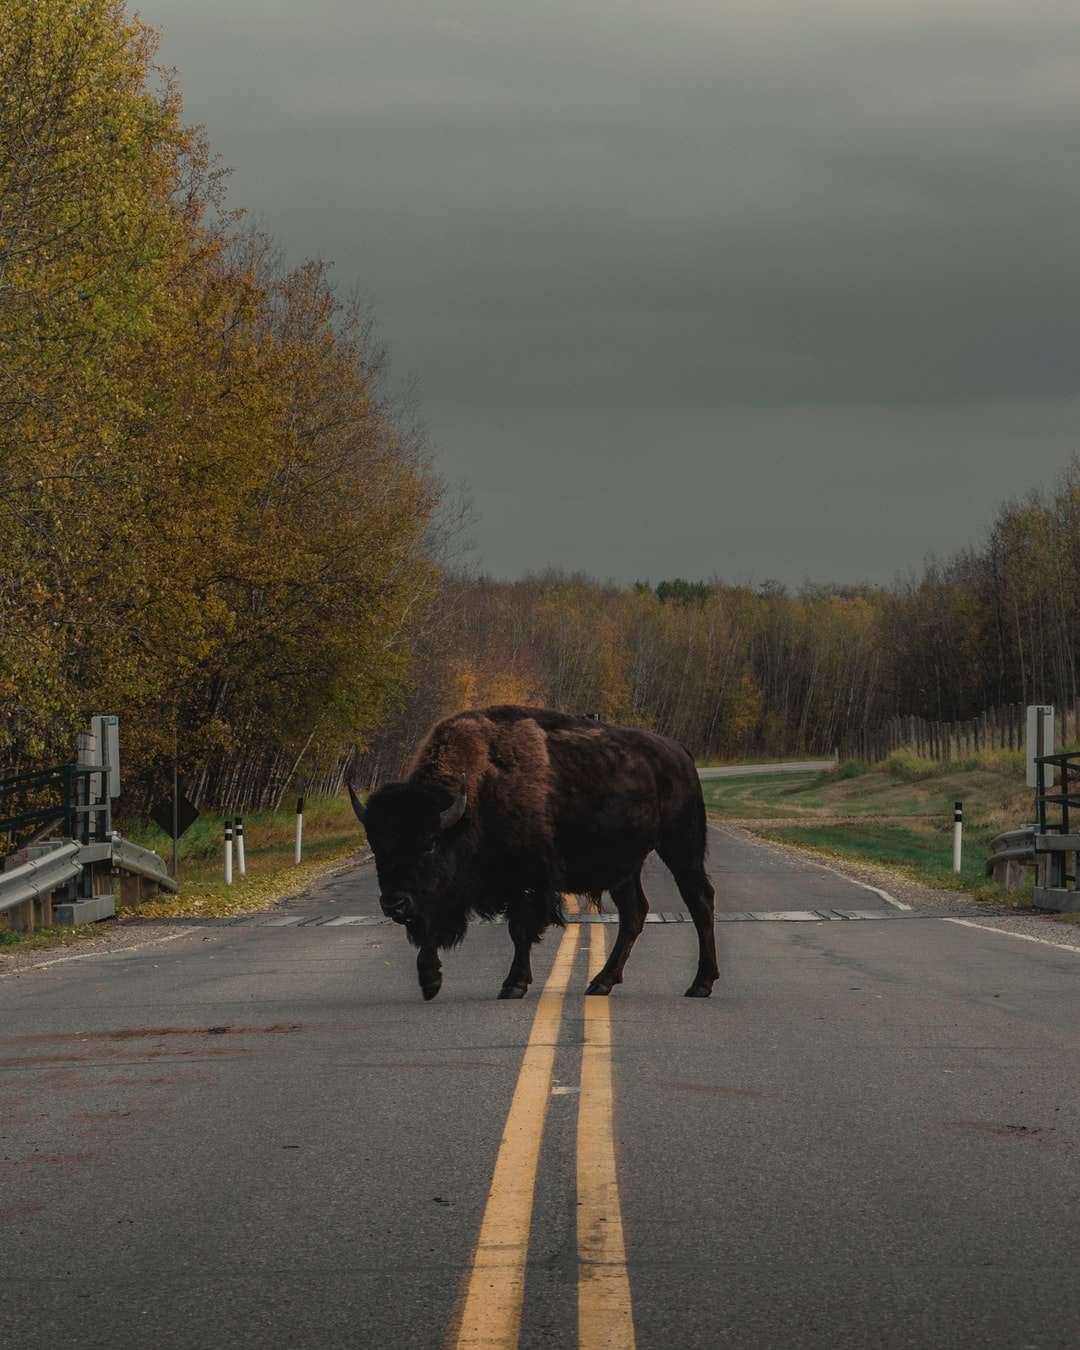 A funny thing you can have the chance to experience at the Elk Island National Park.